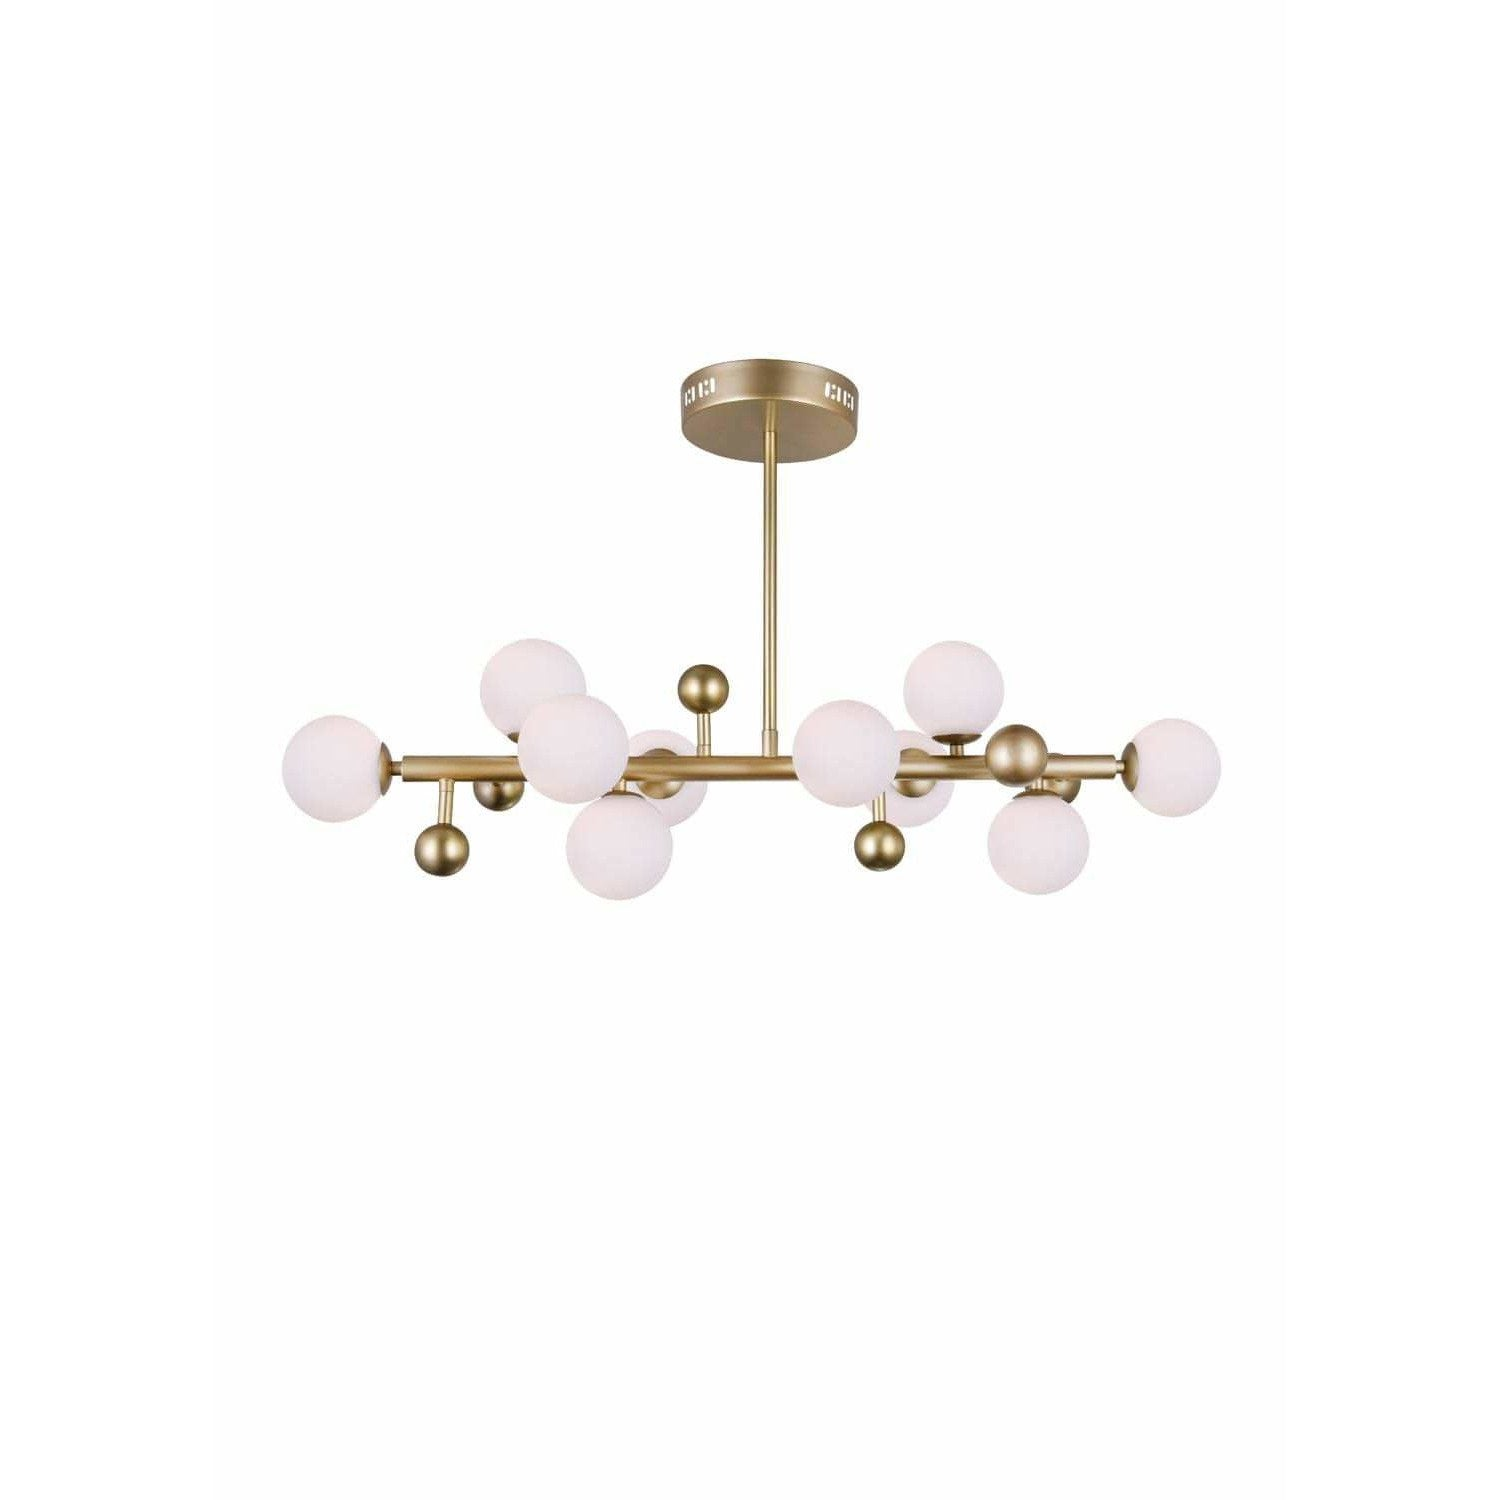 CWI Lighting Chandeliers Sun Gold Element 10 Light Chandelier with Sun Gold Finish by CWI Lighting 1125P36-10-268